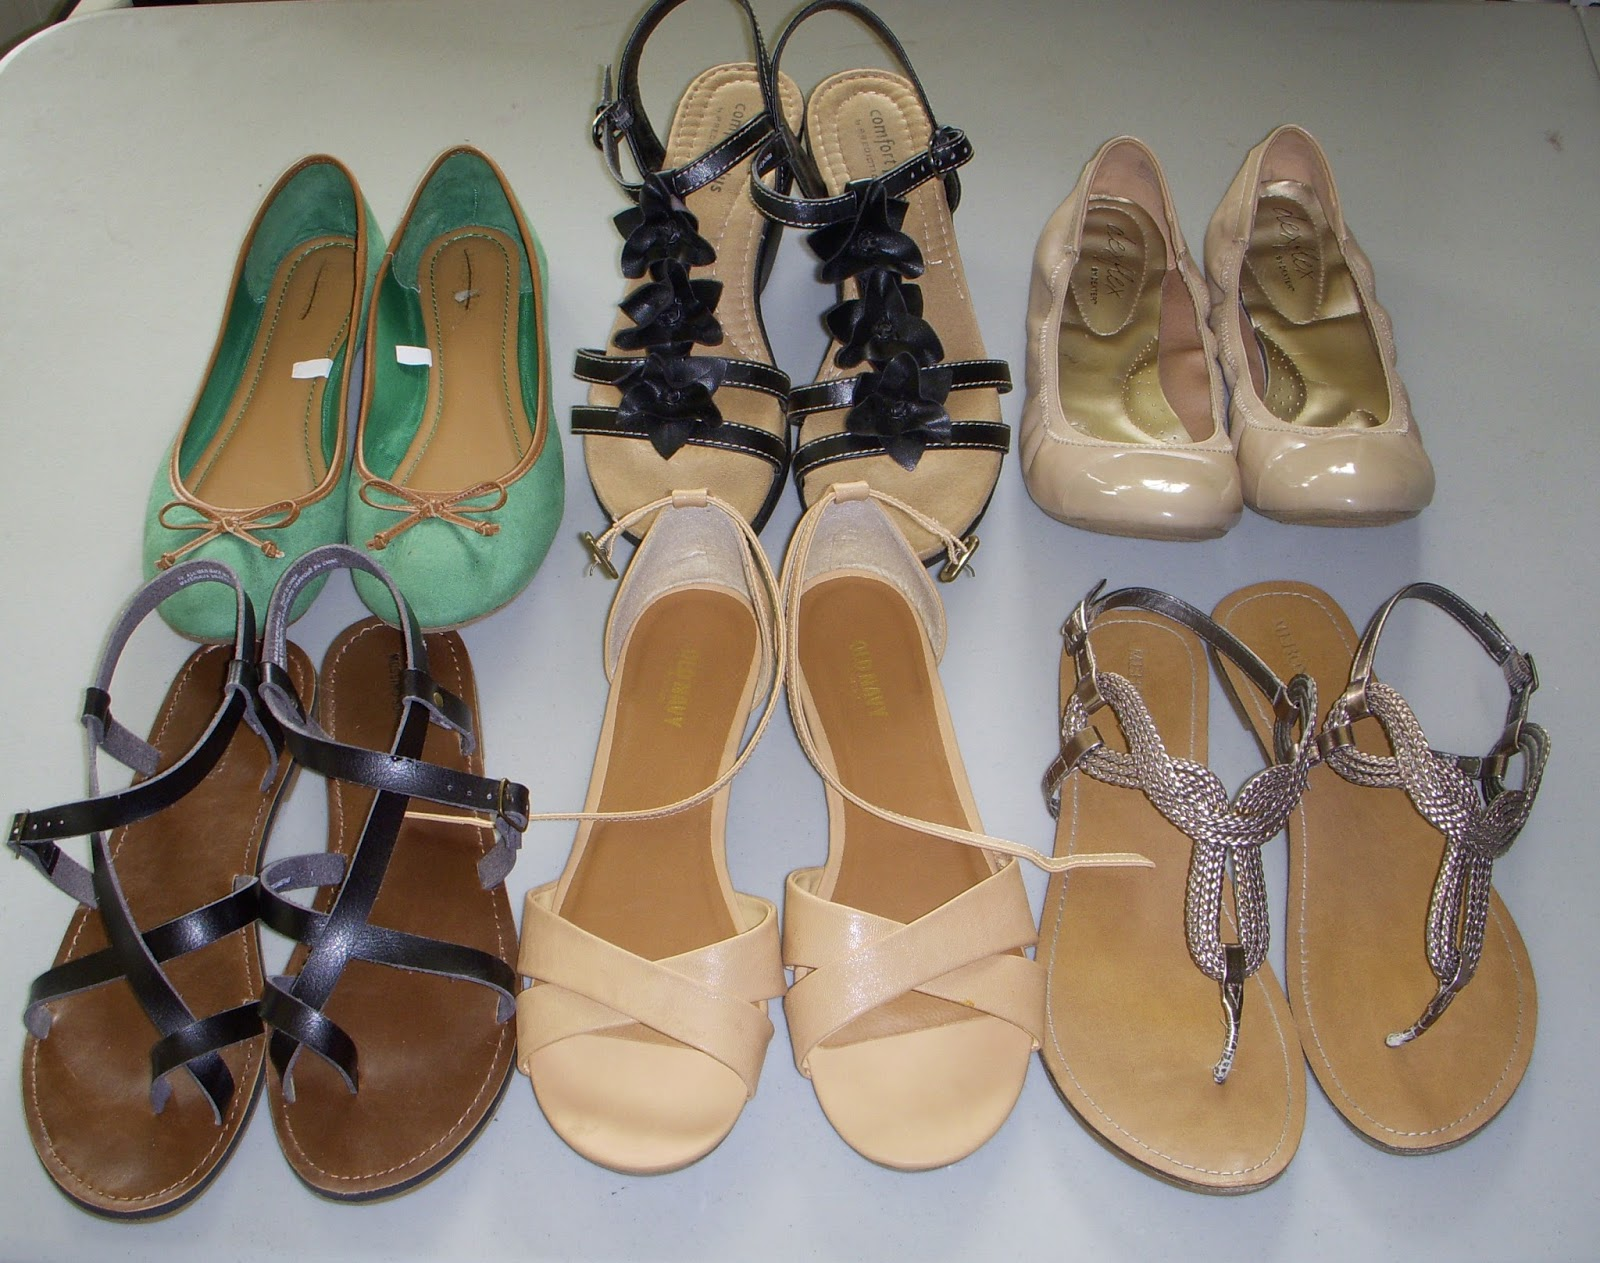 Black sandals old navy - Green Flats Target Thrifted New Black Wedges Payless Nude Flats Payless Black Sandals Target Nude Sandals Old Navy Pewter Sandals Target